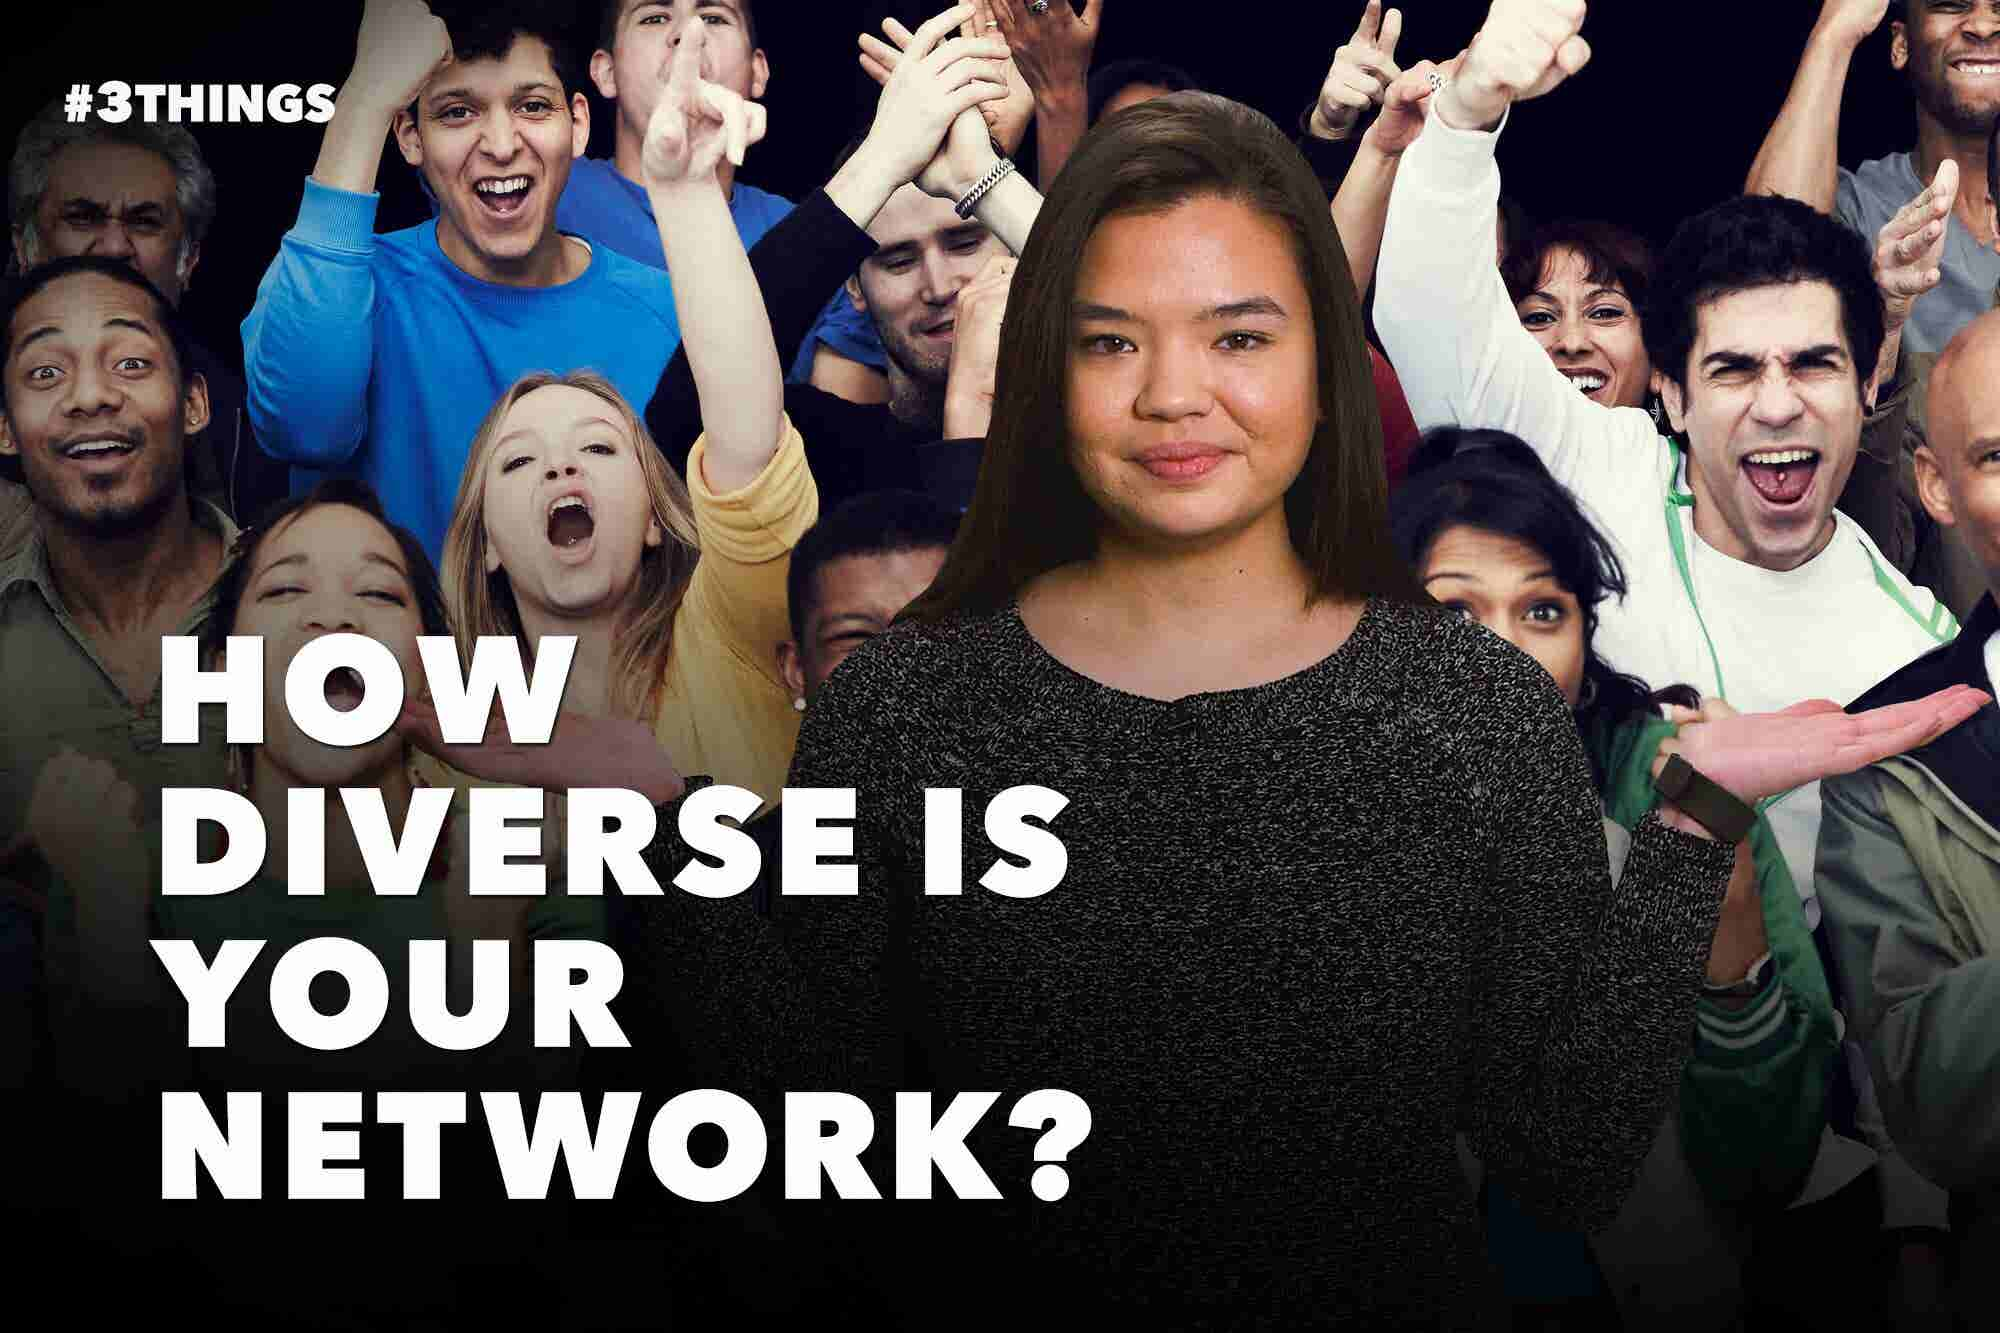 3 Ways to Diversify Your Network